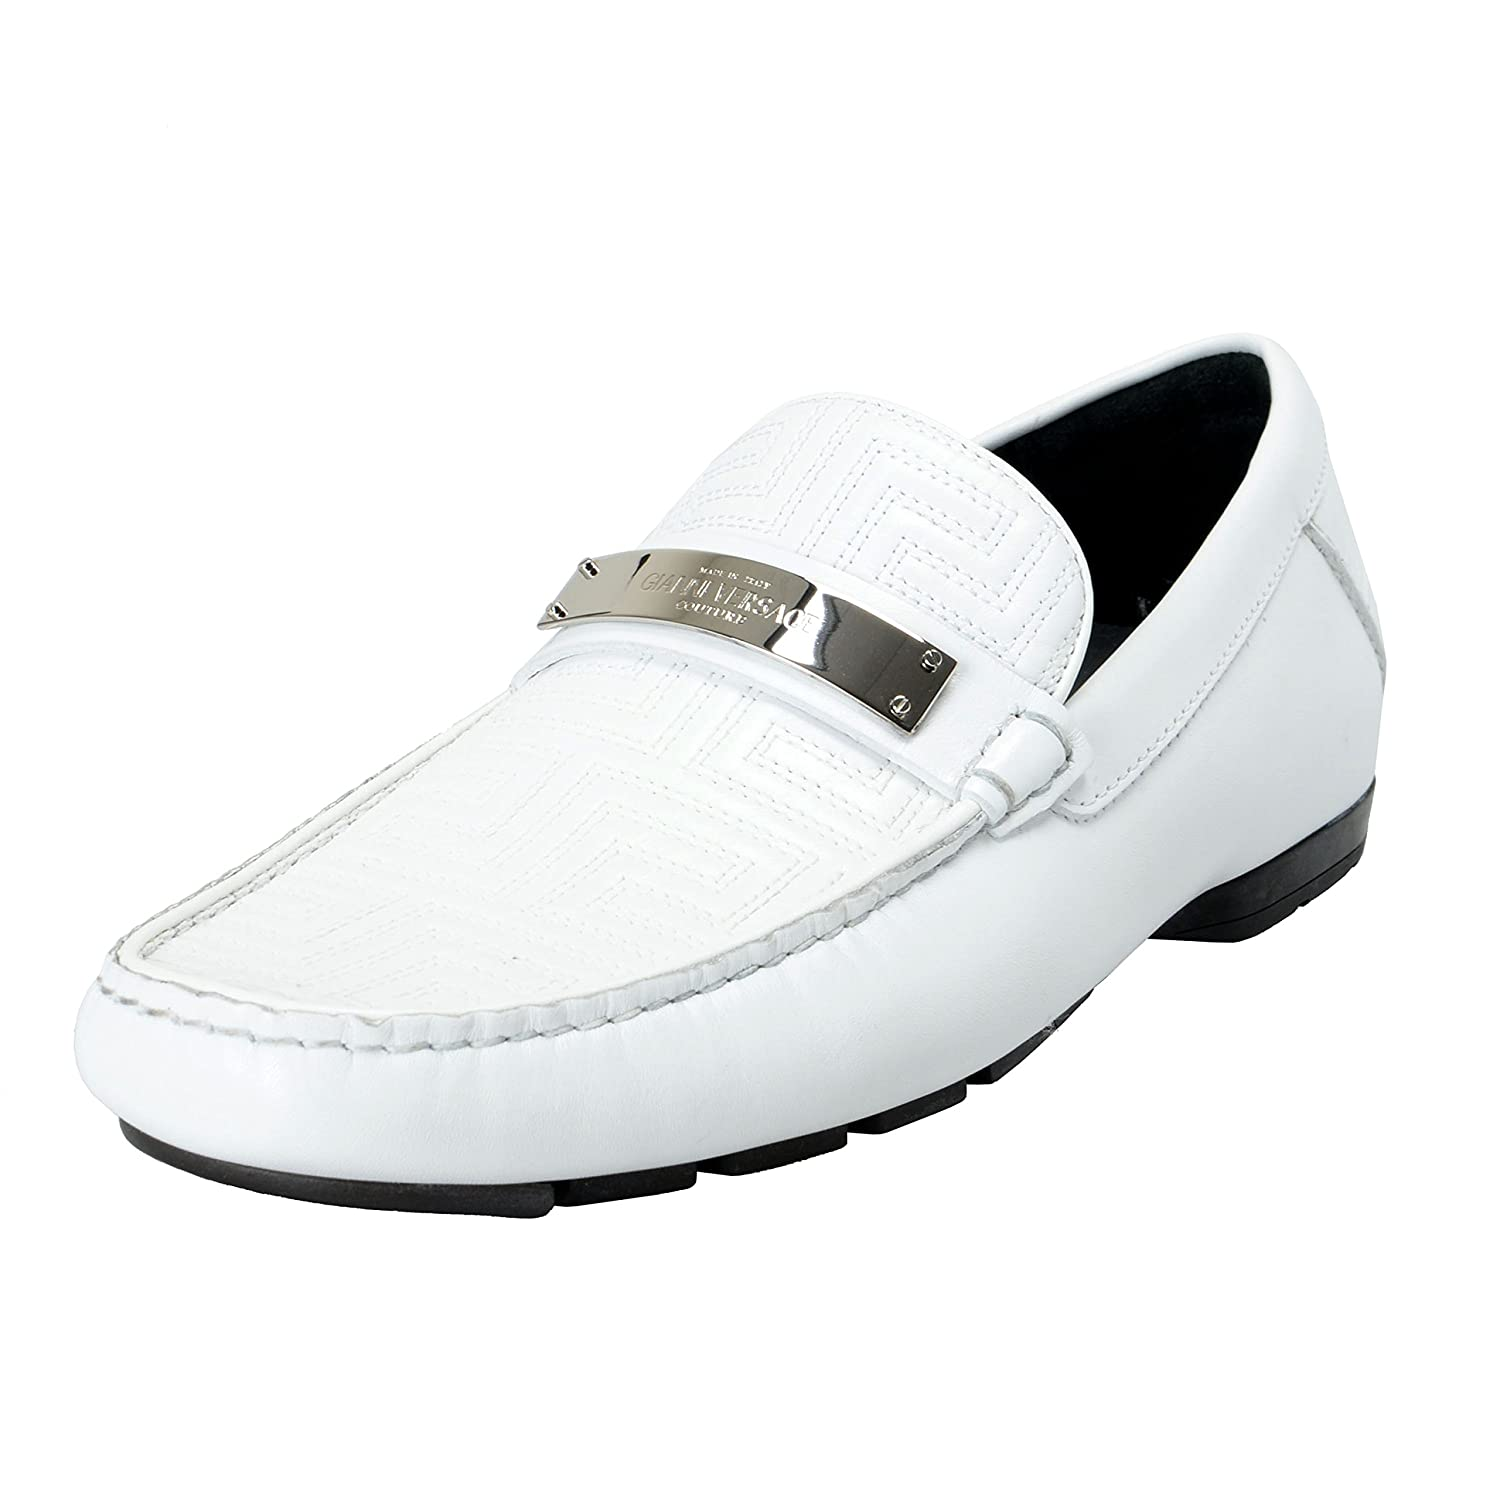 a65c69f6 Amazon.com: Versace Gianni Men's White Moccasins Loafers Slip On ...